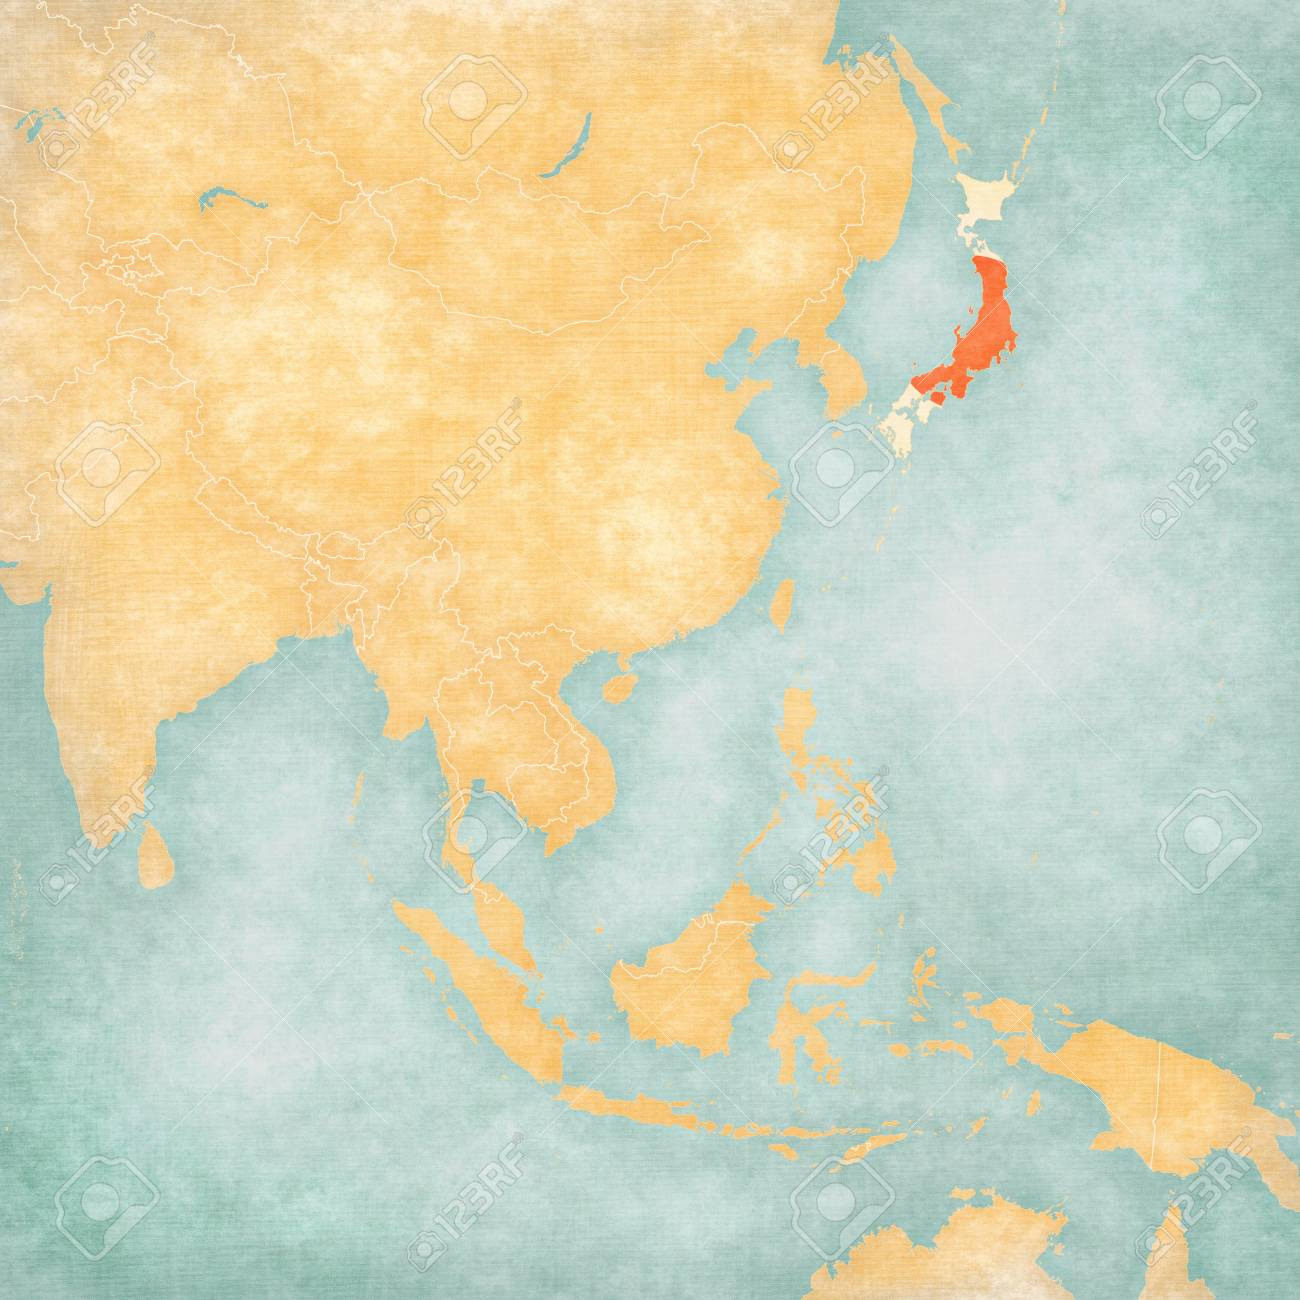 A Map Of East Asia.Japan Japanese Flag On The Map Of East And Southeast Asia In